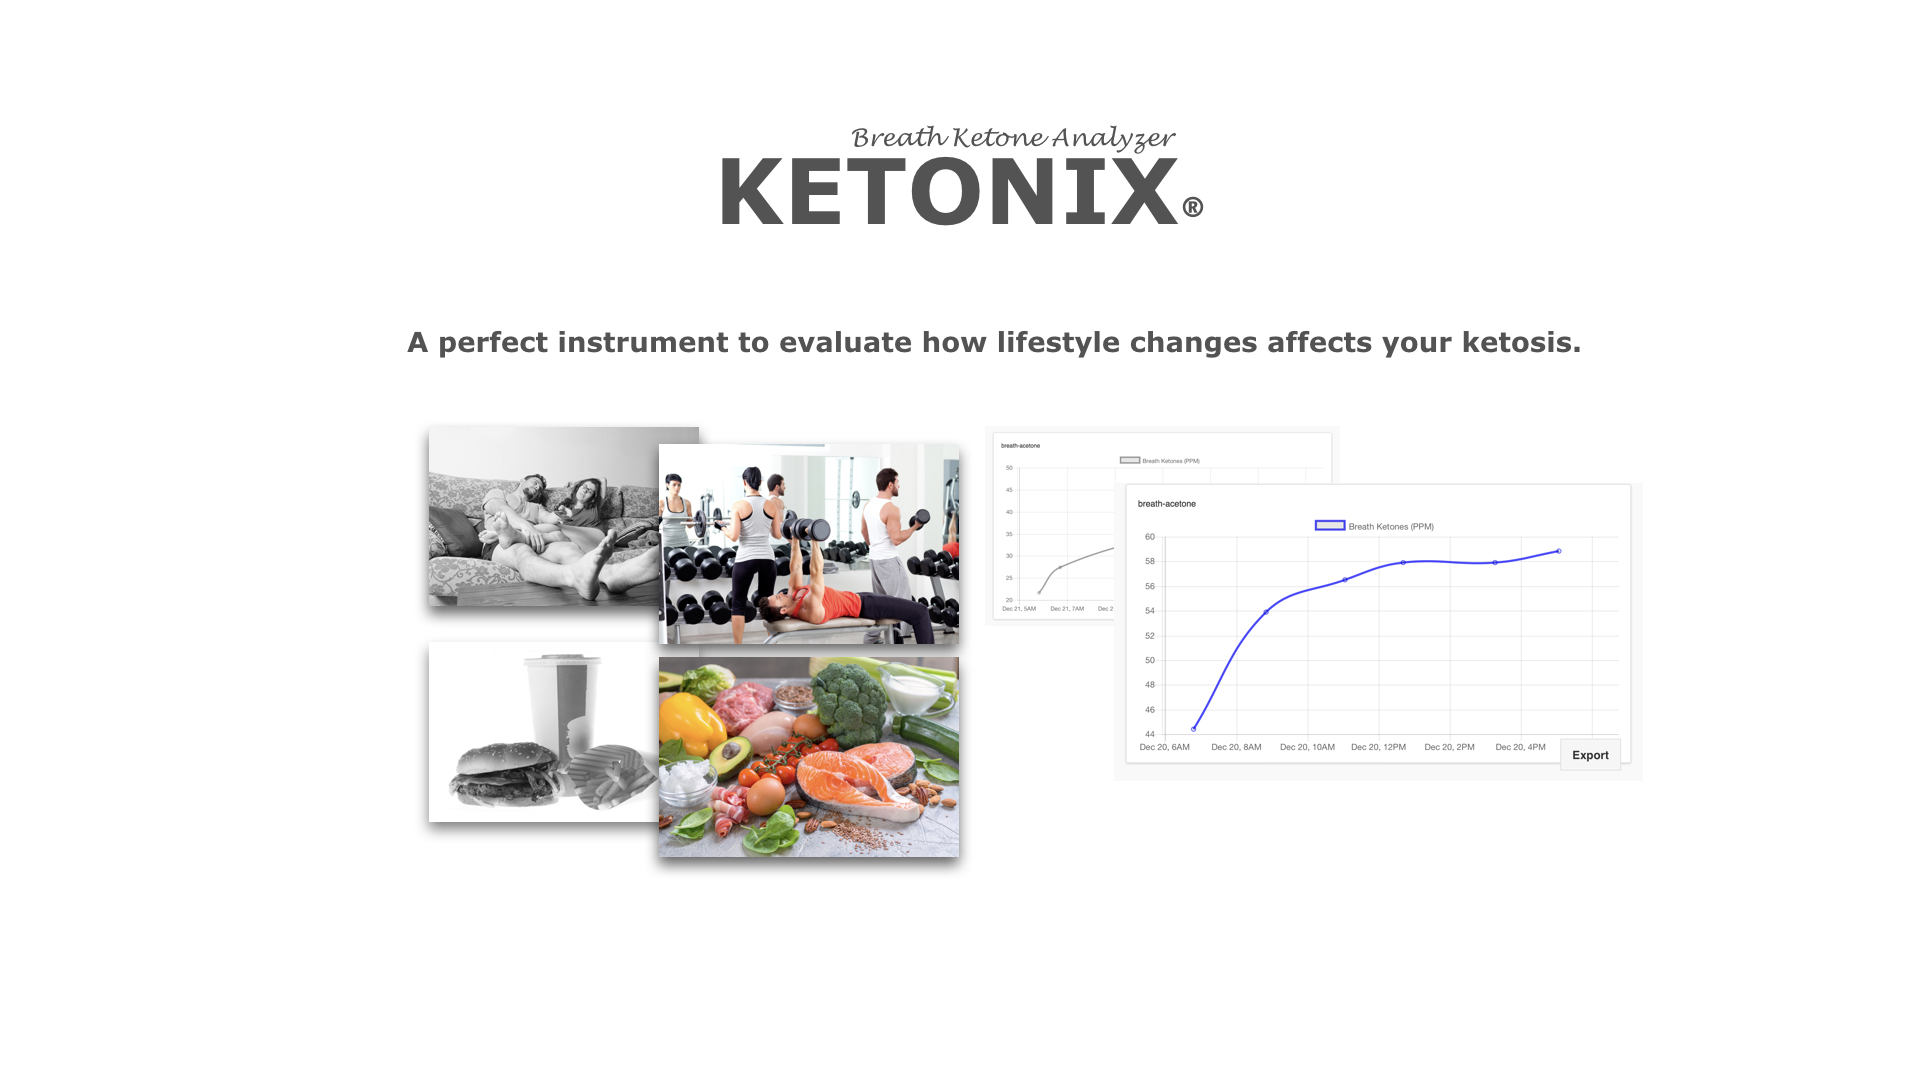 KetoNIX® Breath Ketone Analyzer